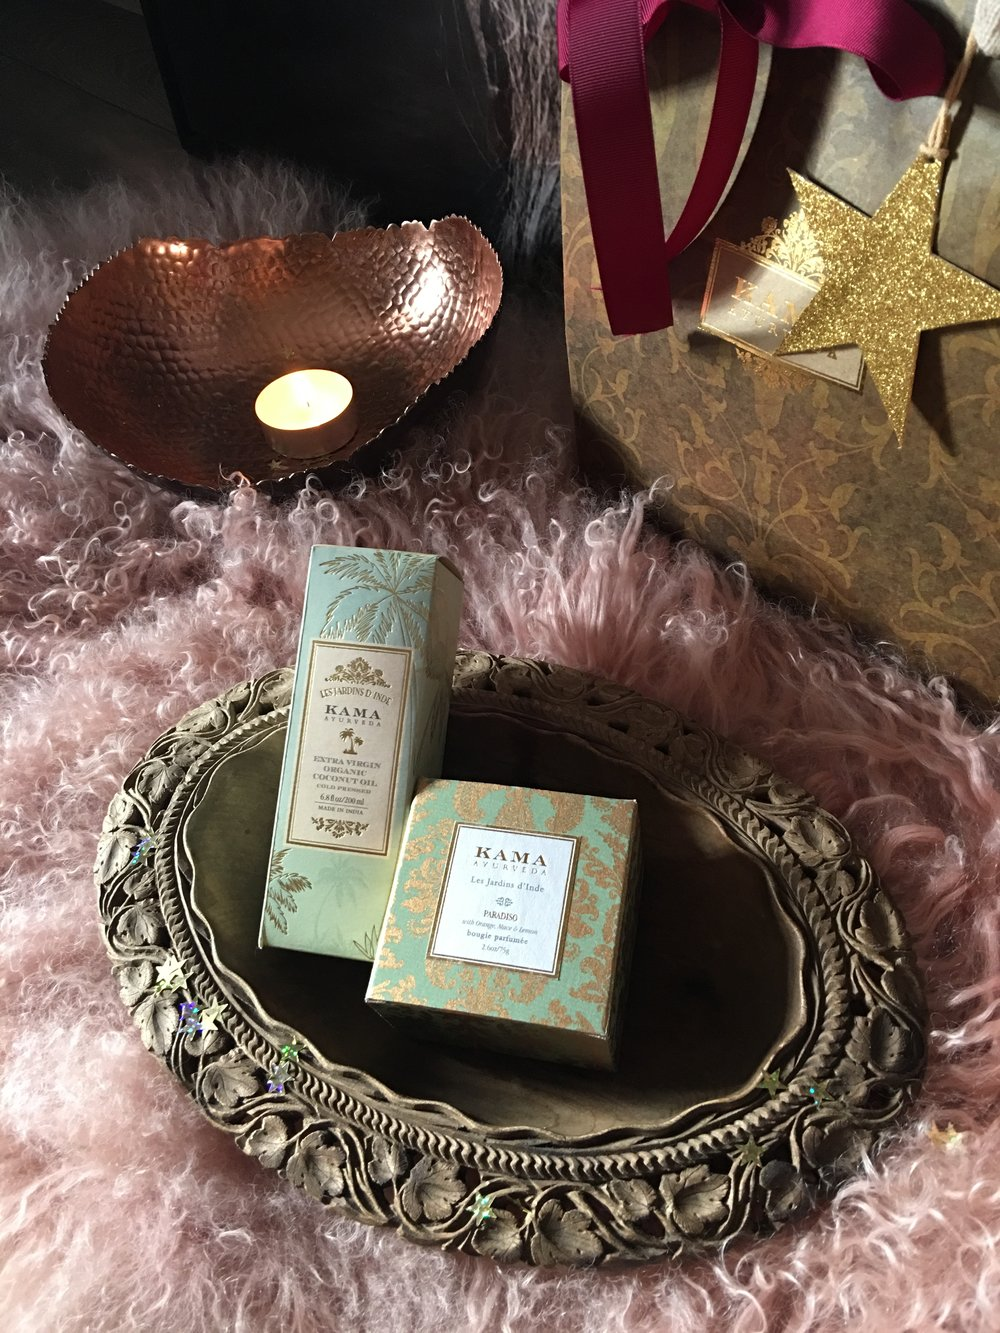 Foot Massage  (30mins), a bottle of Kama Ayurveda Coconut Oil and Kama Ayurveda Paradiso Candle, and a box of Pukka Herbs tea  of your choice.   £60